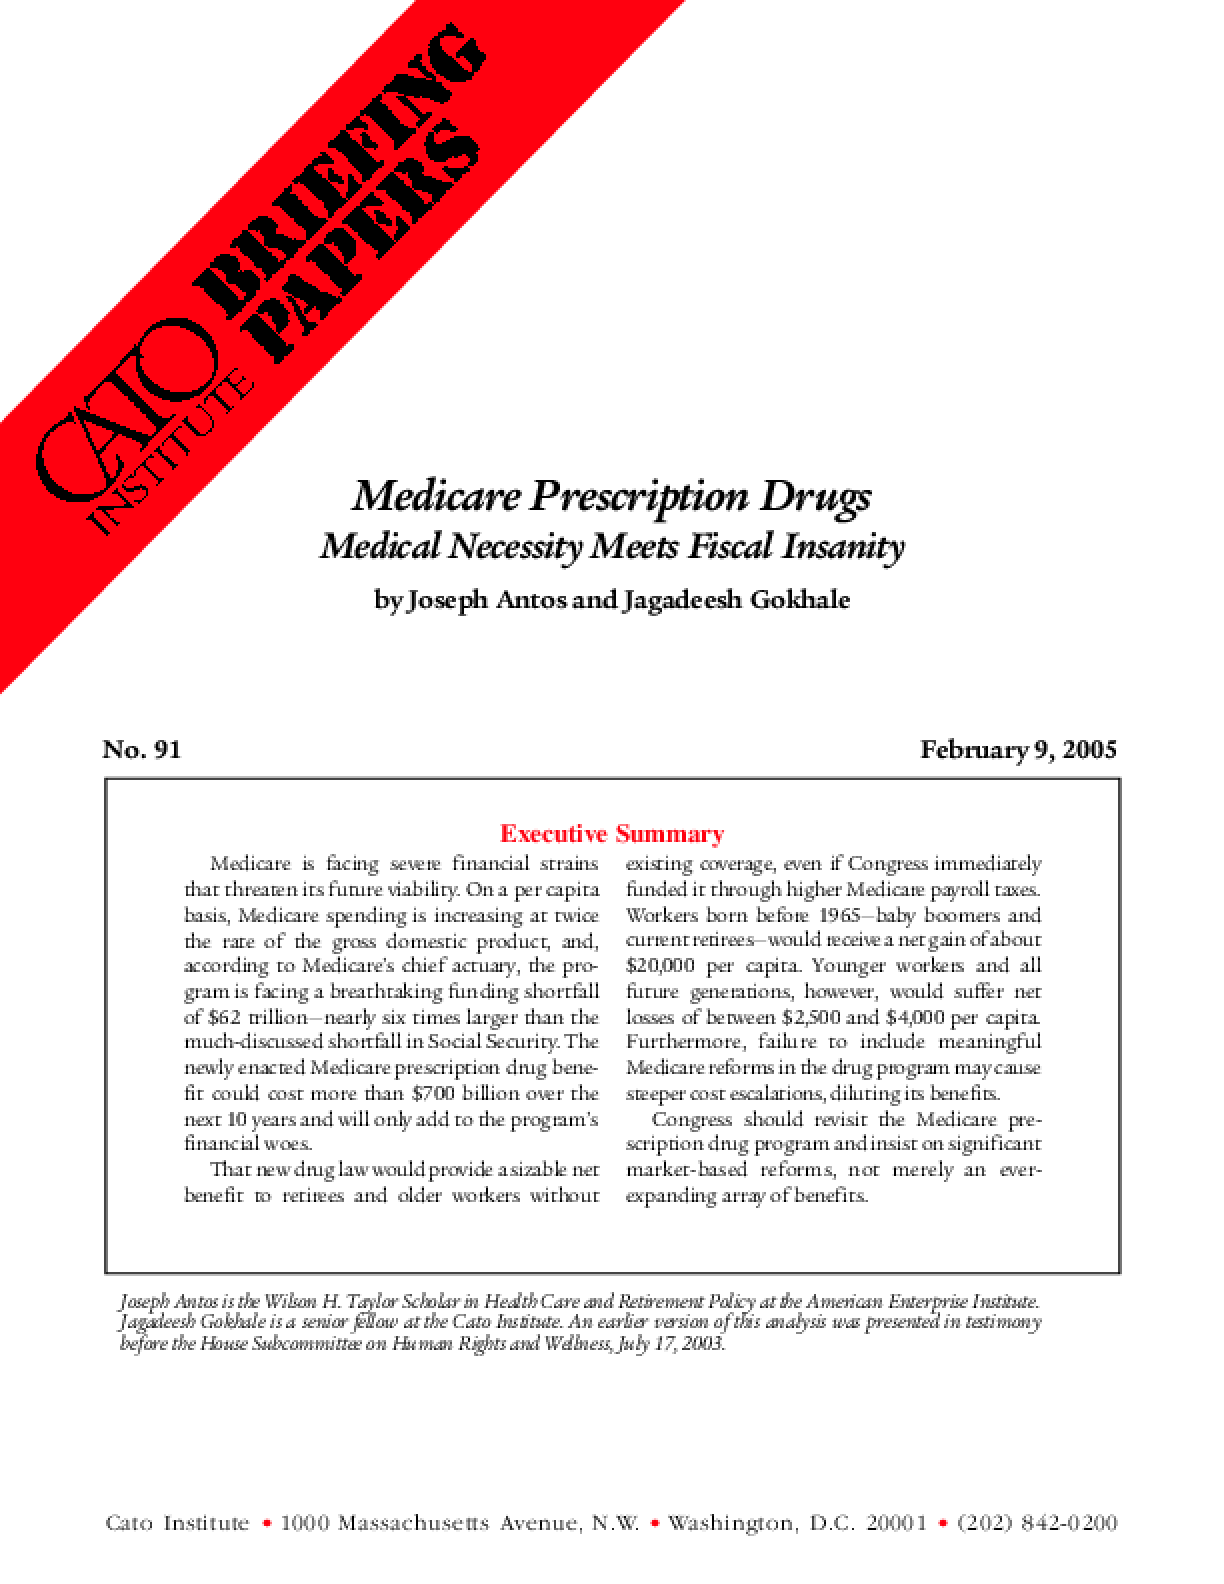 Medicare Prescription Drugs: Medical Necessity Meets Fiscal Insanity